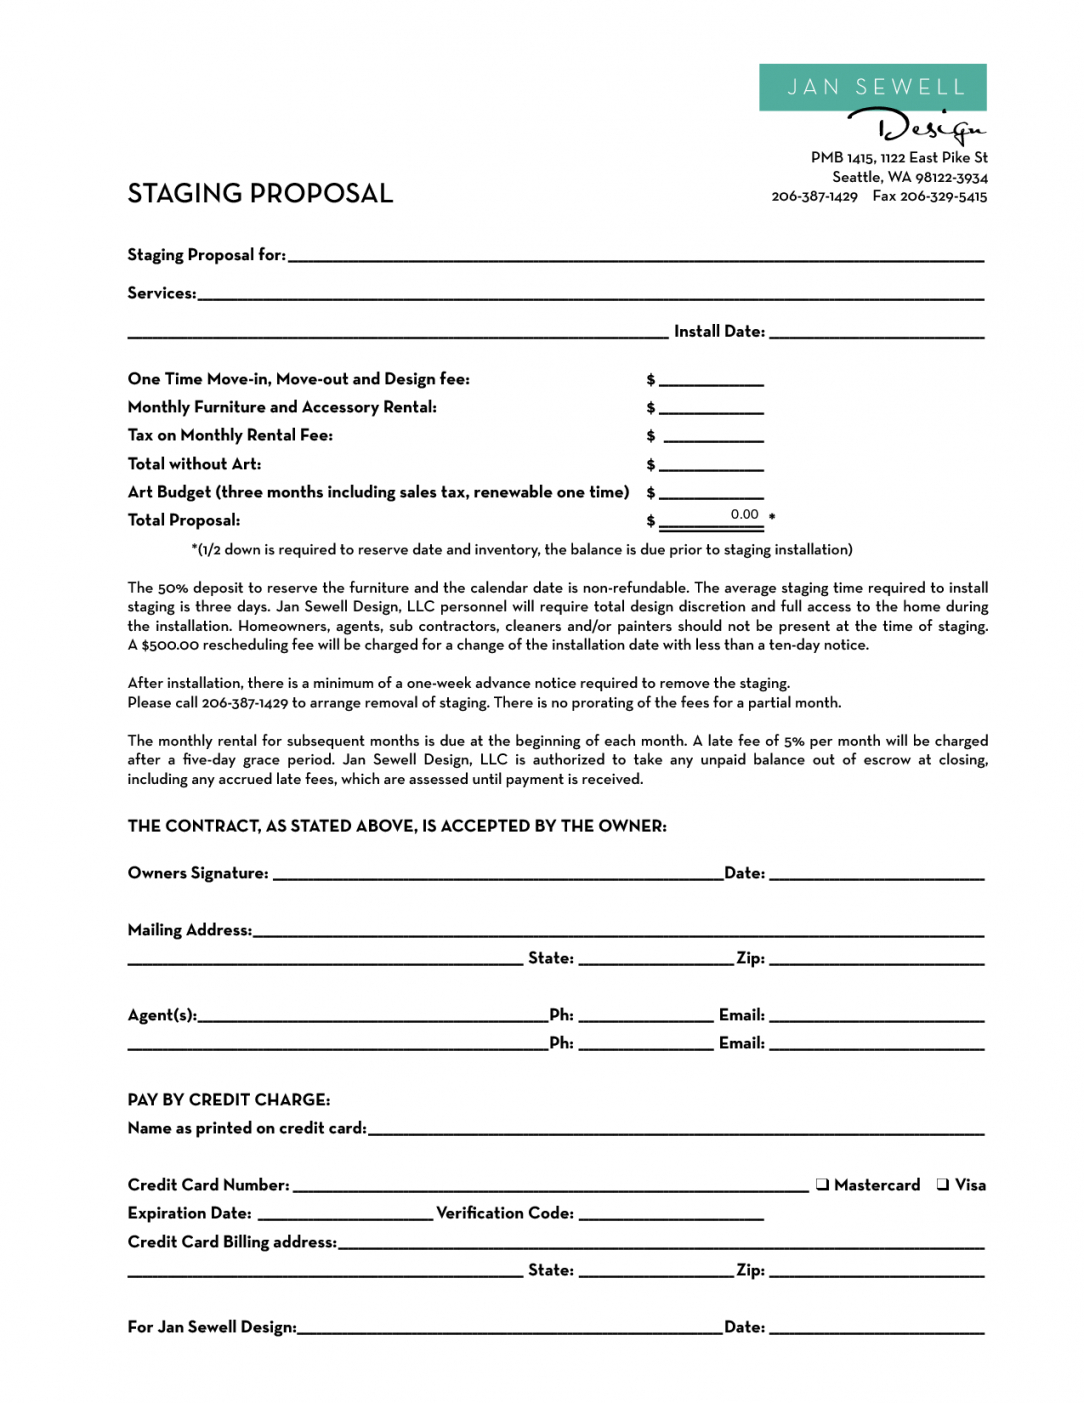 home staging contract template  bing images  stg in 2018 home staging contract template